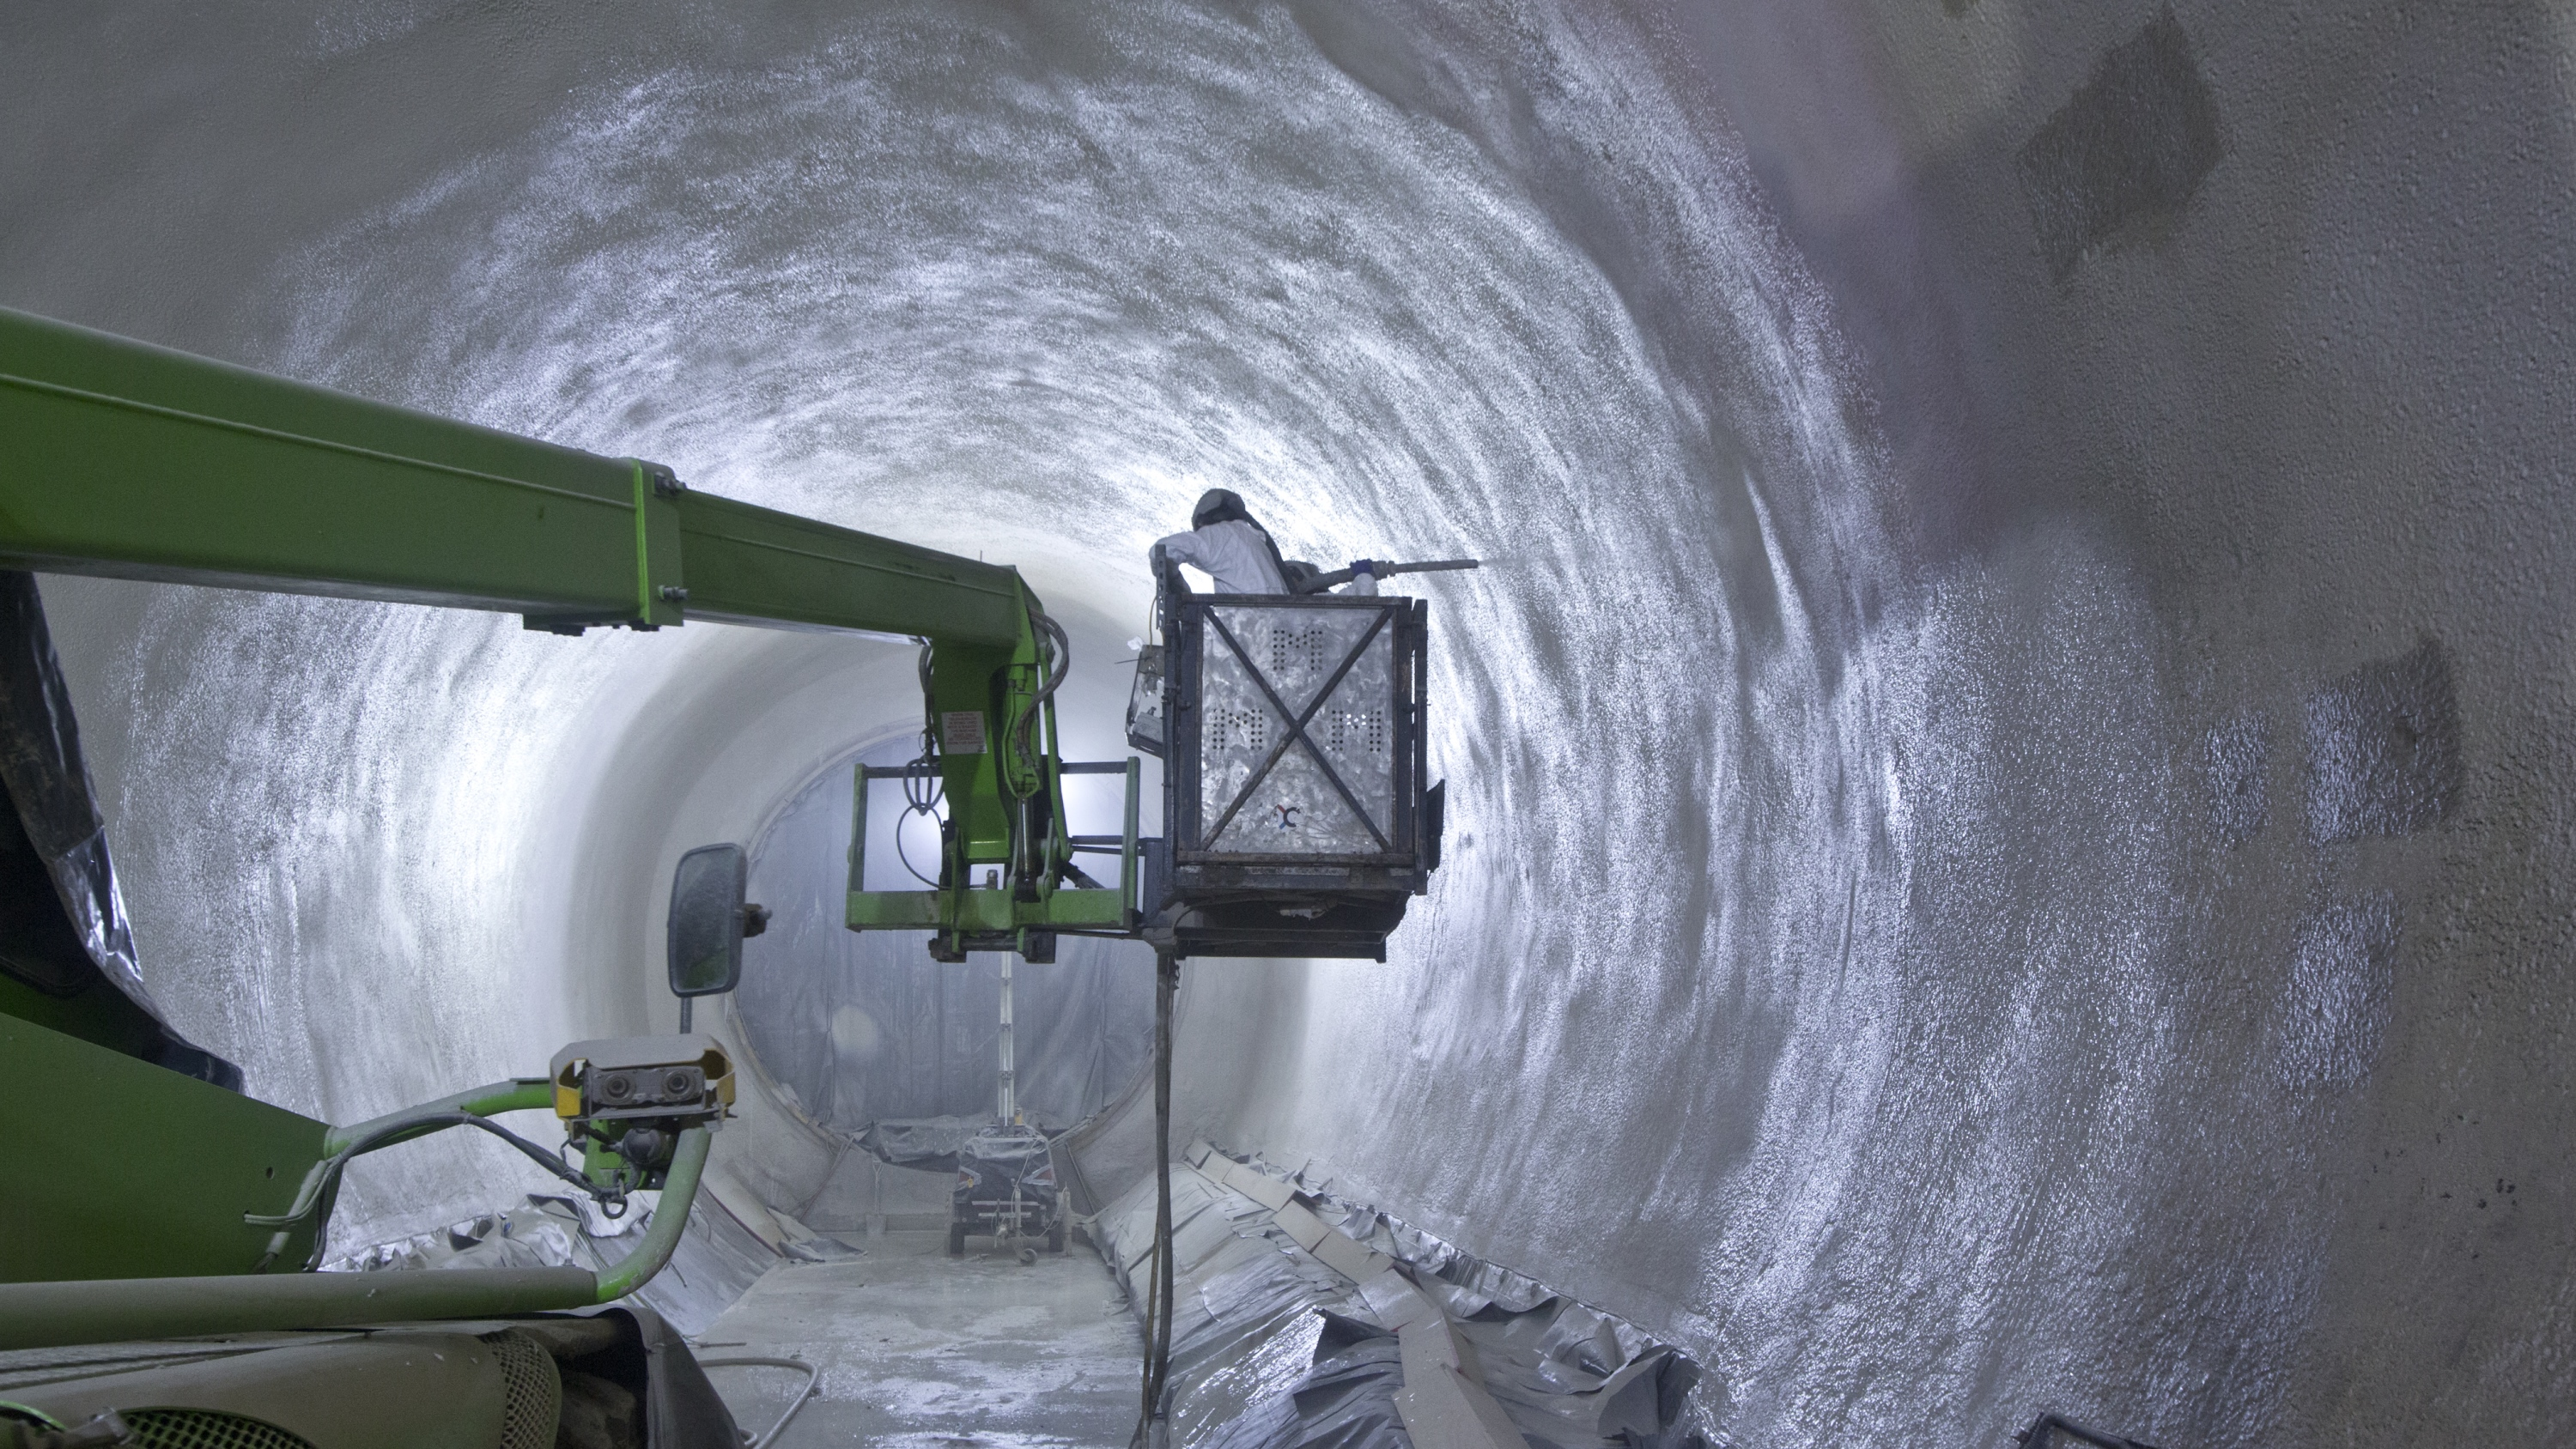 Crossrail: Whitechapel and Liverpool Street SCL